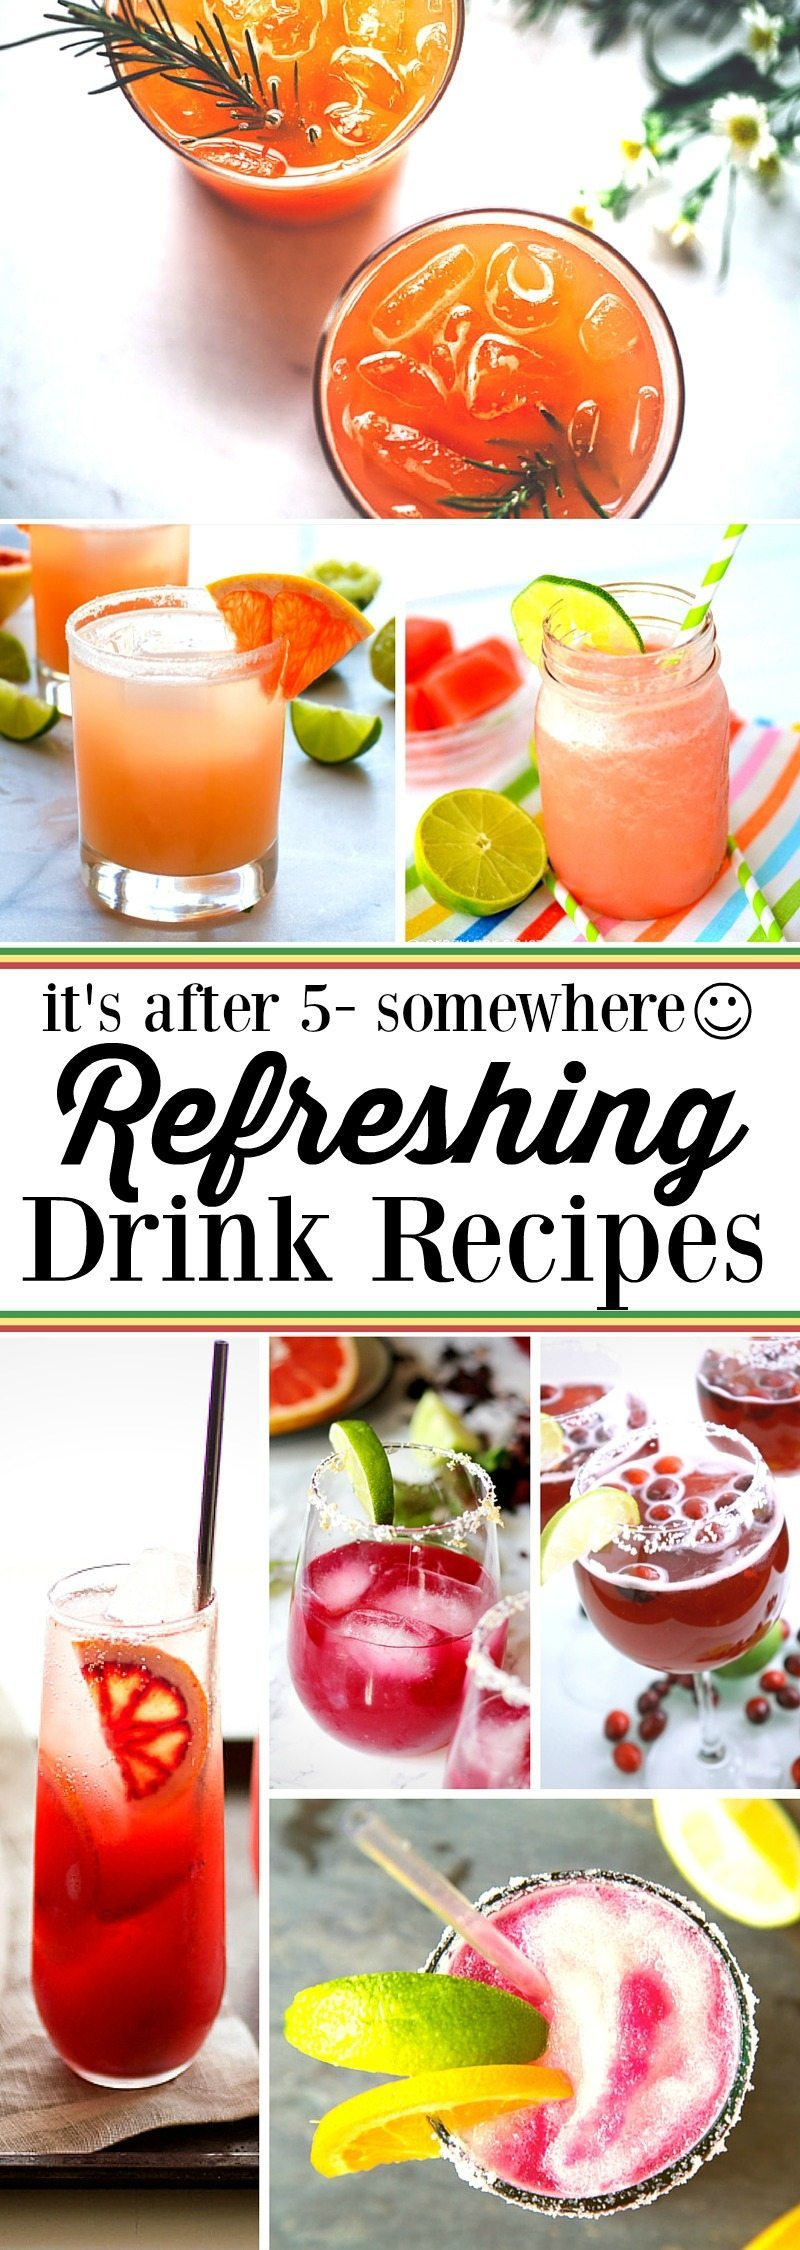 After 5 drink recipes